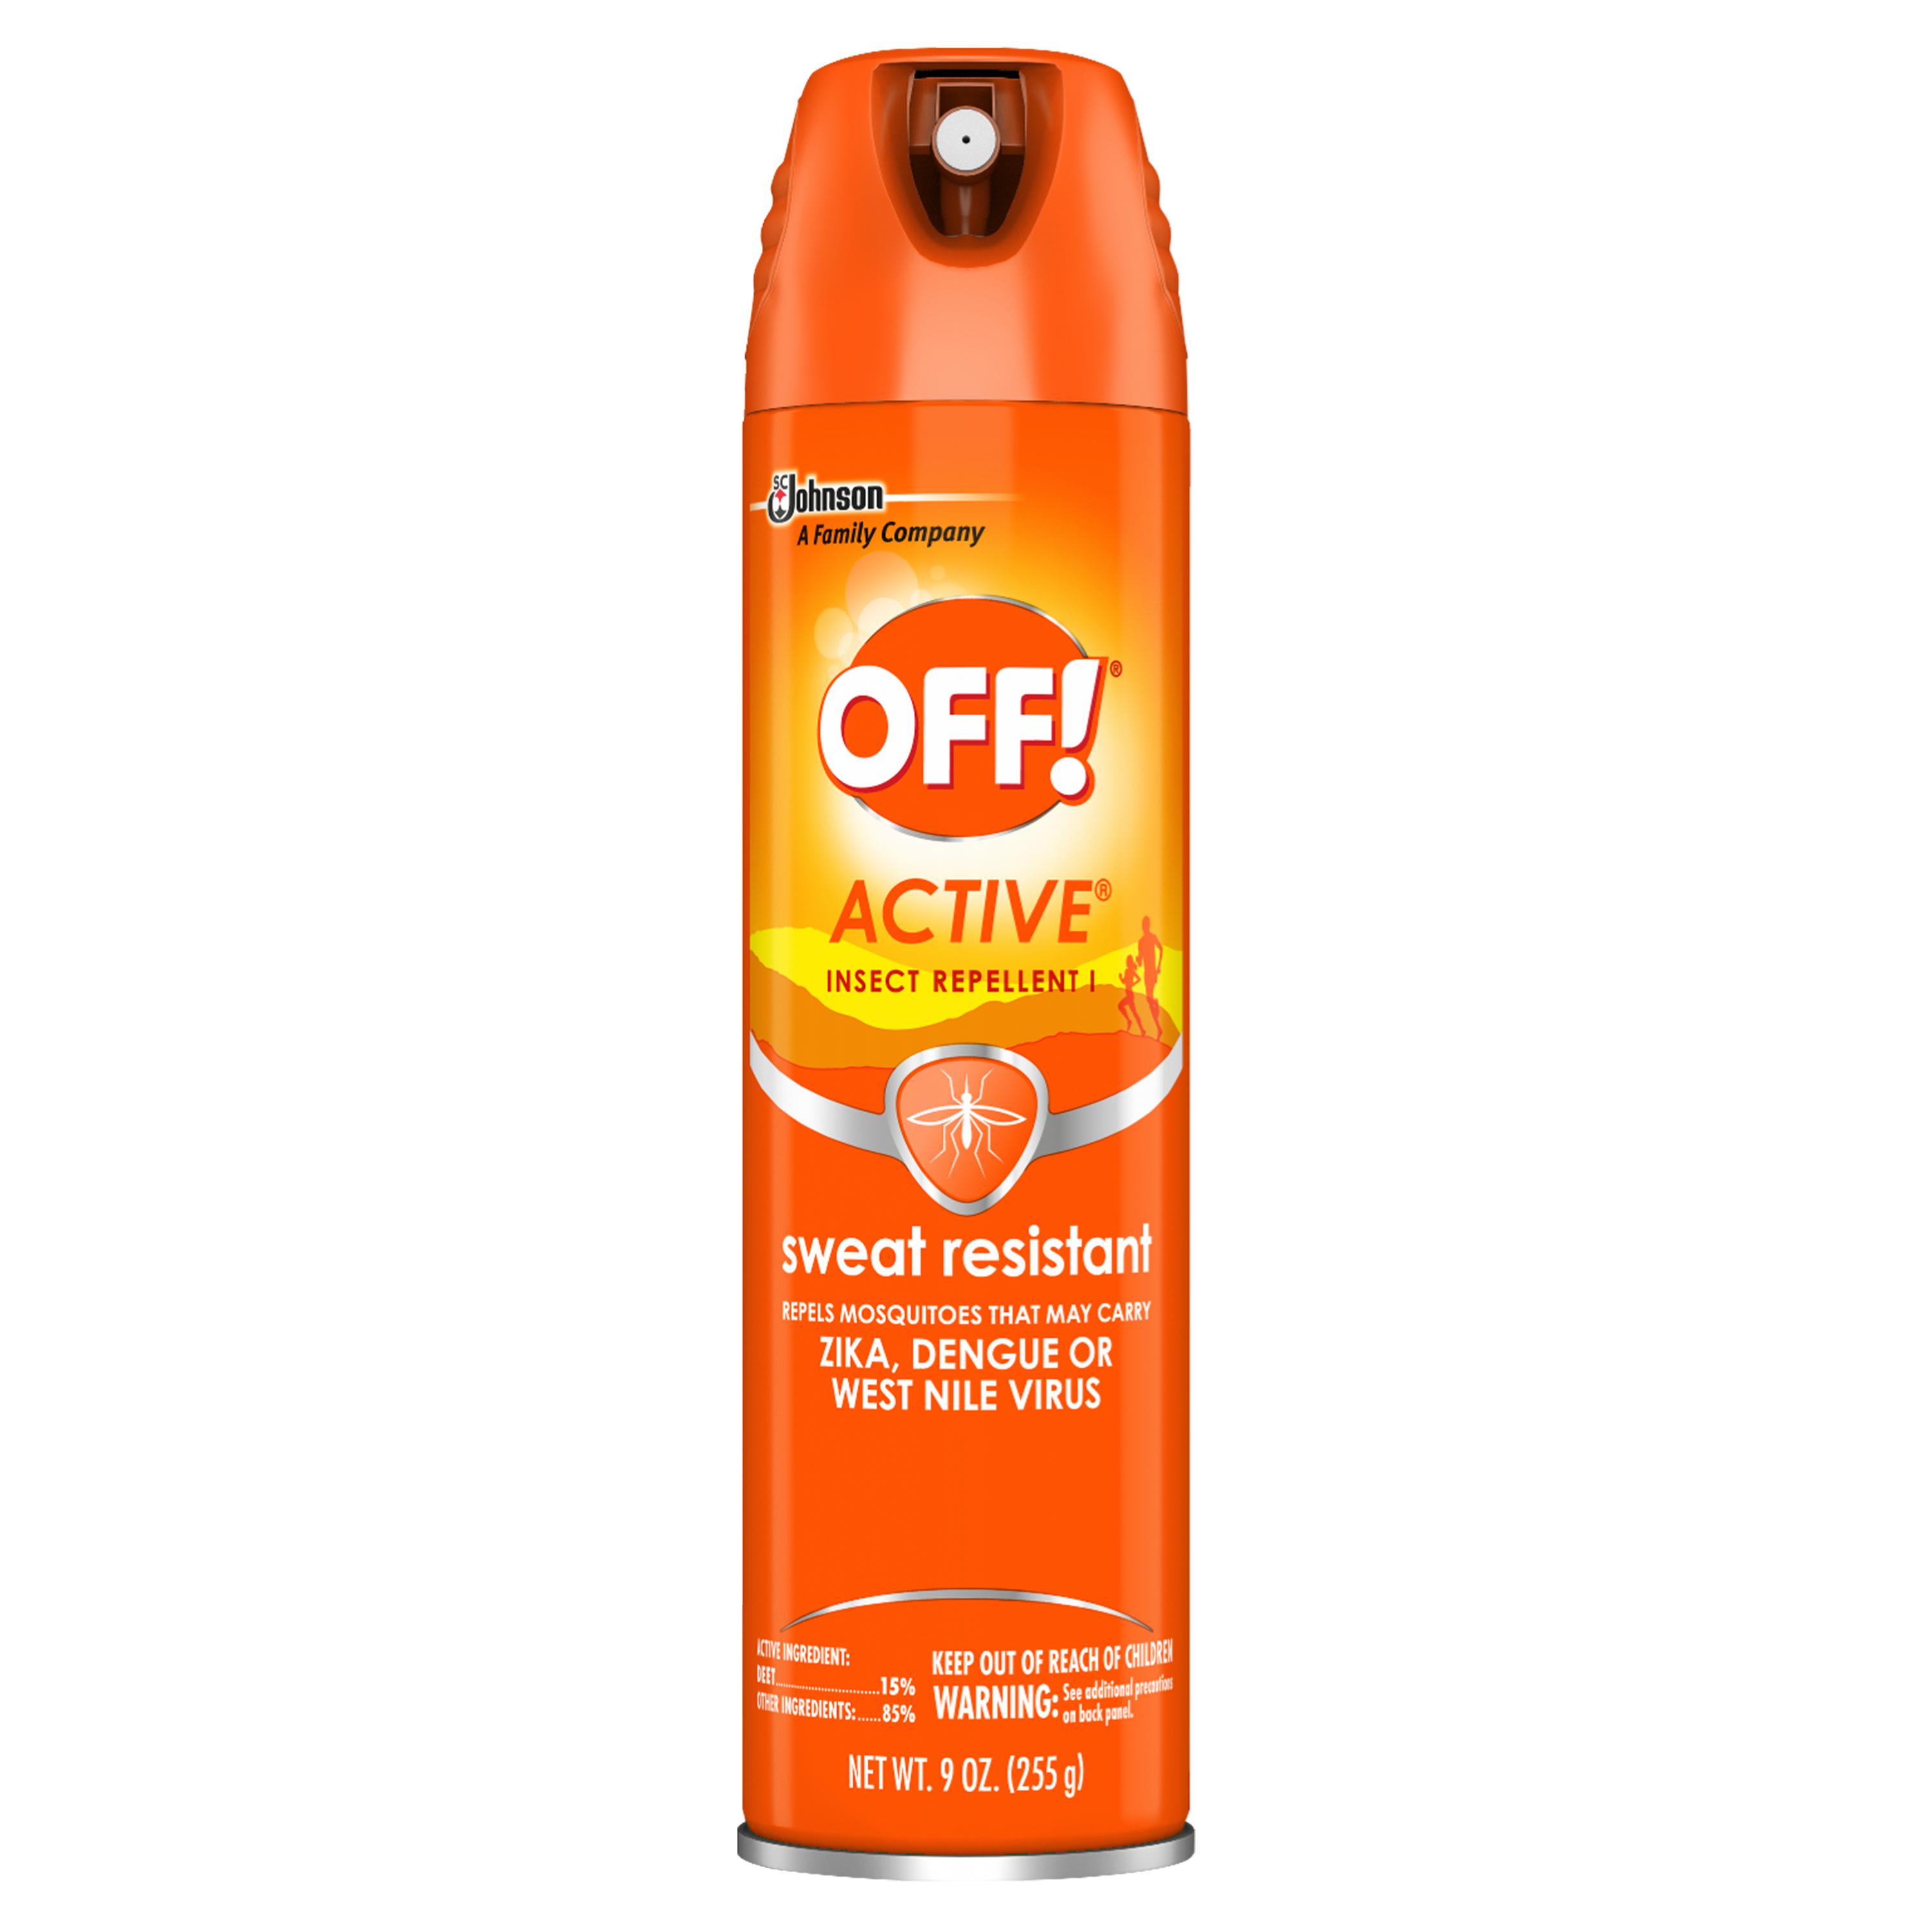 OFF! Active Insect Repellant